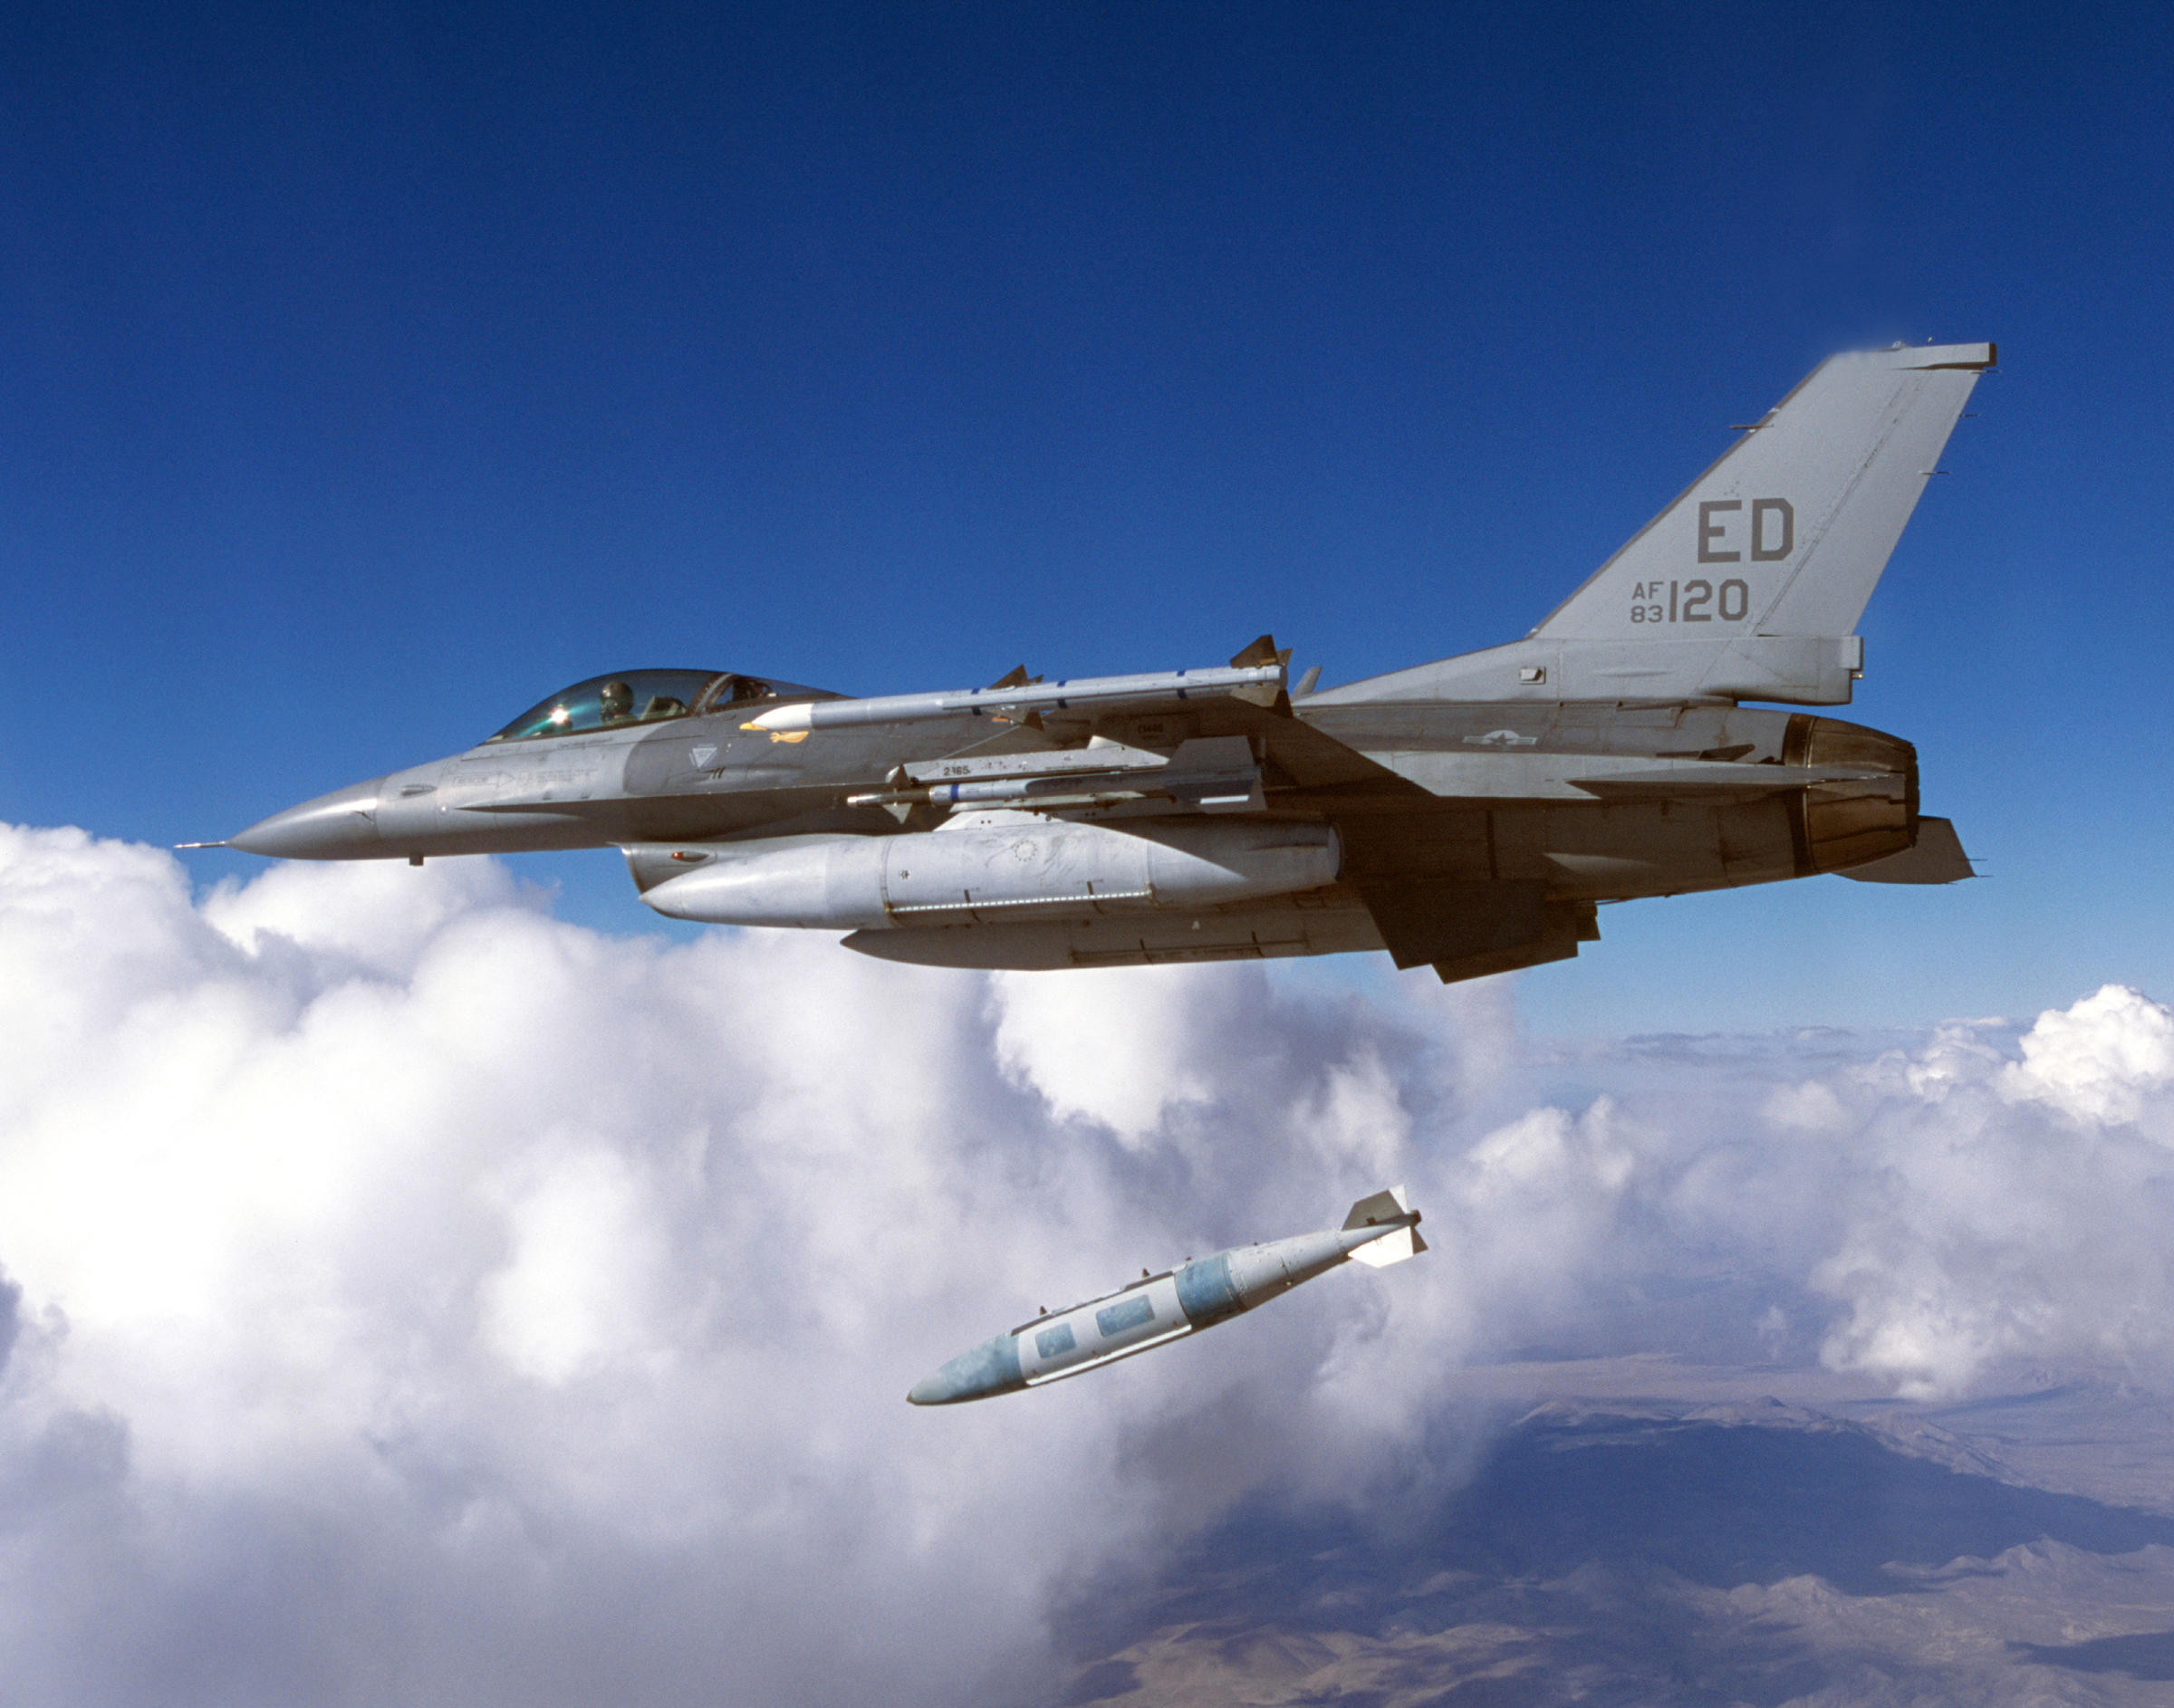 Air Force Fast-tracks New Deep Strike Bunker Buster Bomb